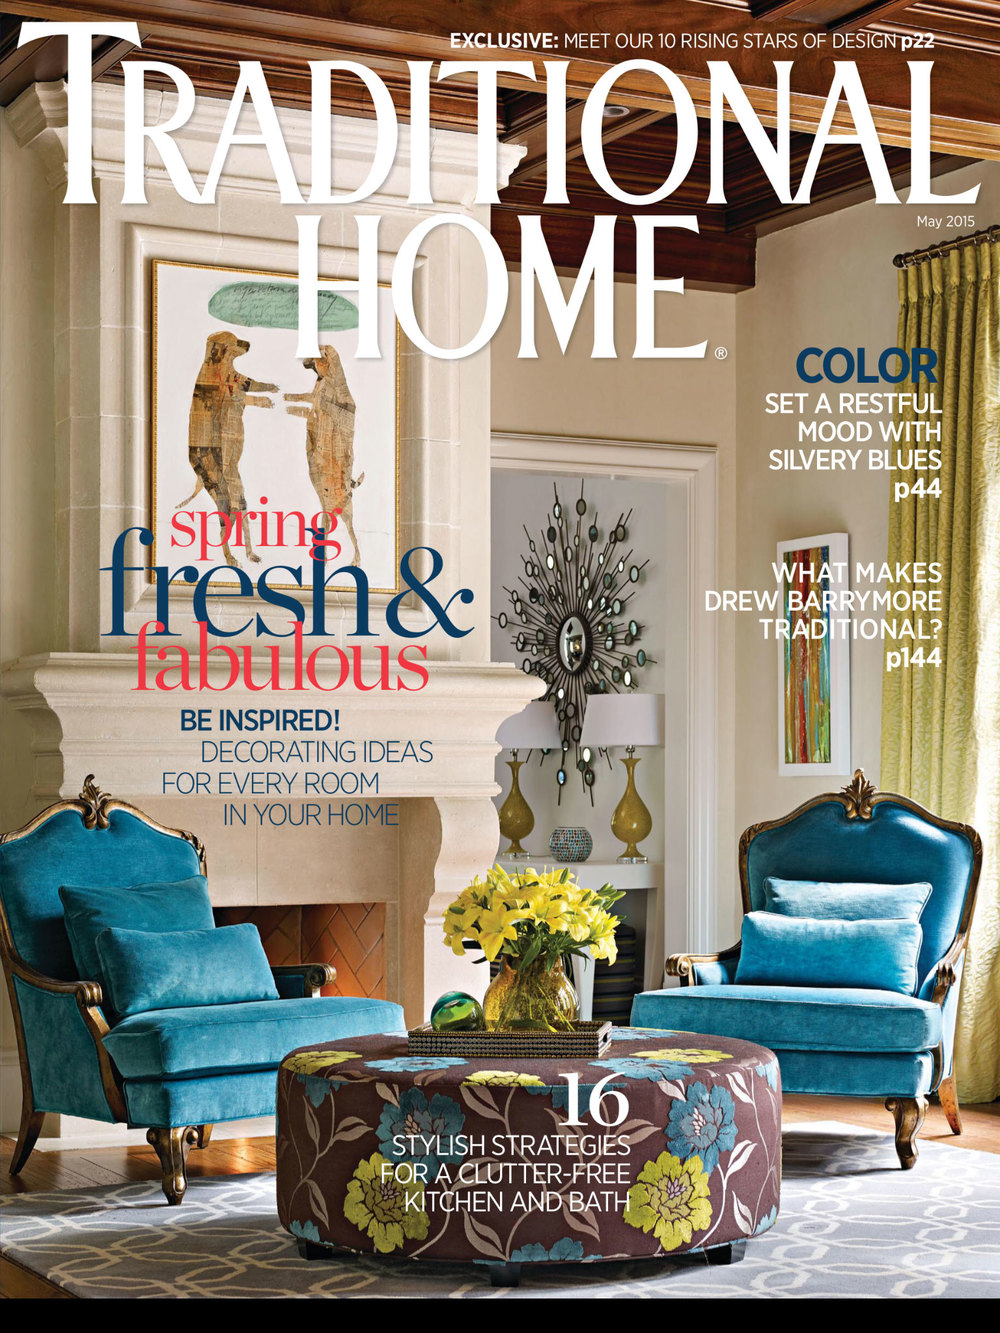 201507-TraditionalHome-cover.jpg